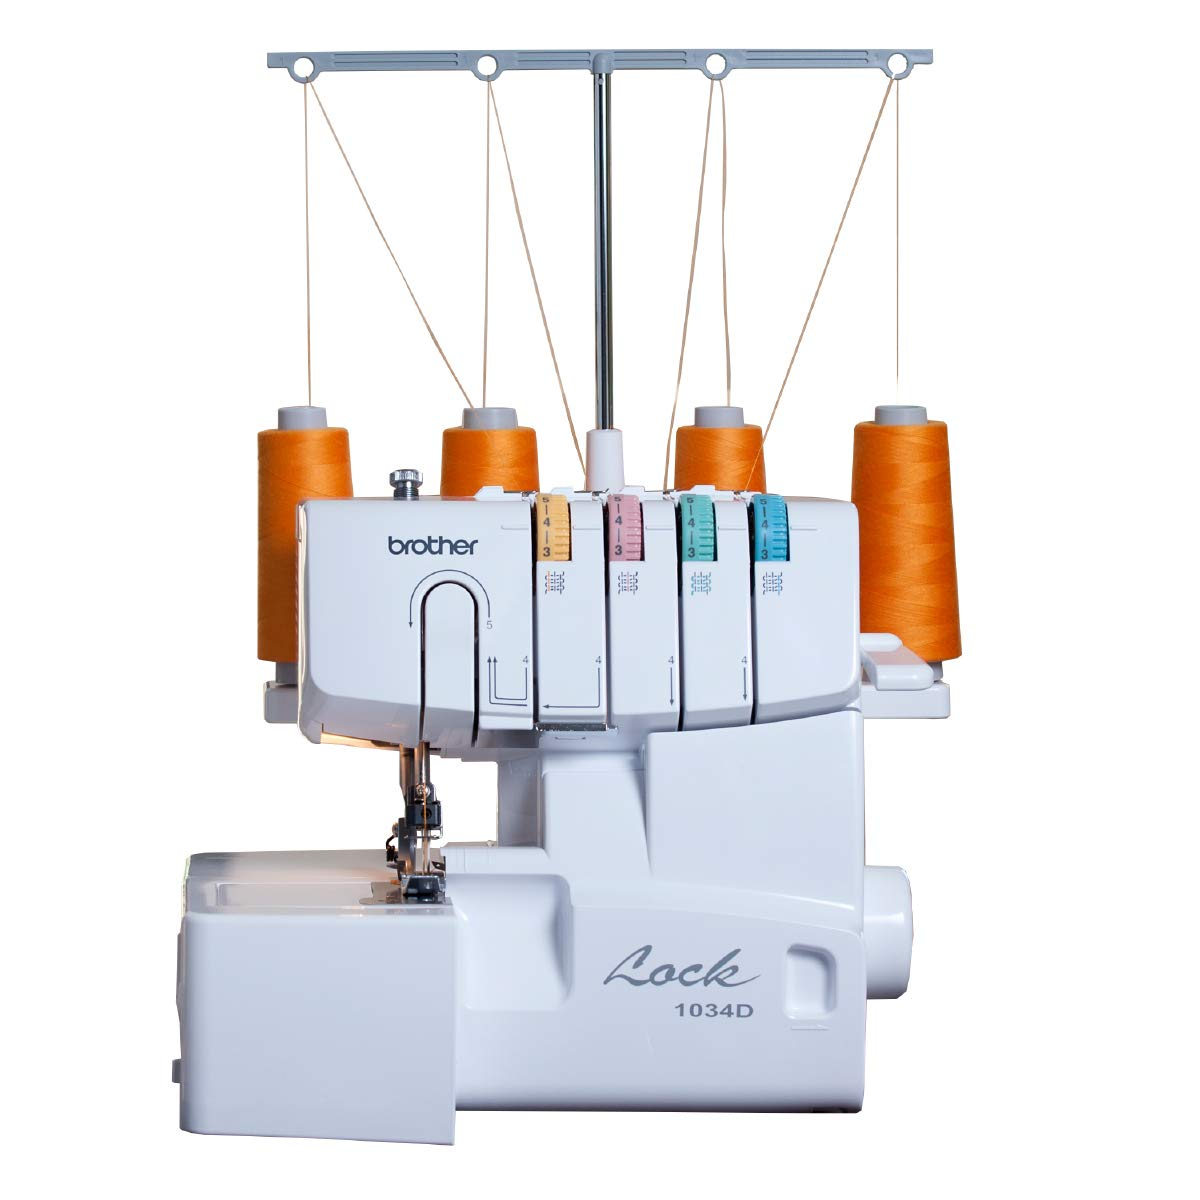 Brother Serger, 1034D, Heavy-Duty Metal Frame Overlock Machine, 1,300 Stitches Per Minute, Removeable Trim Trap, 3 Included Accessory Feet